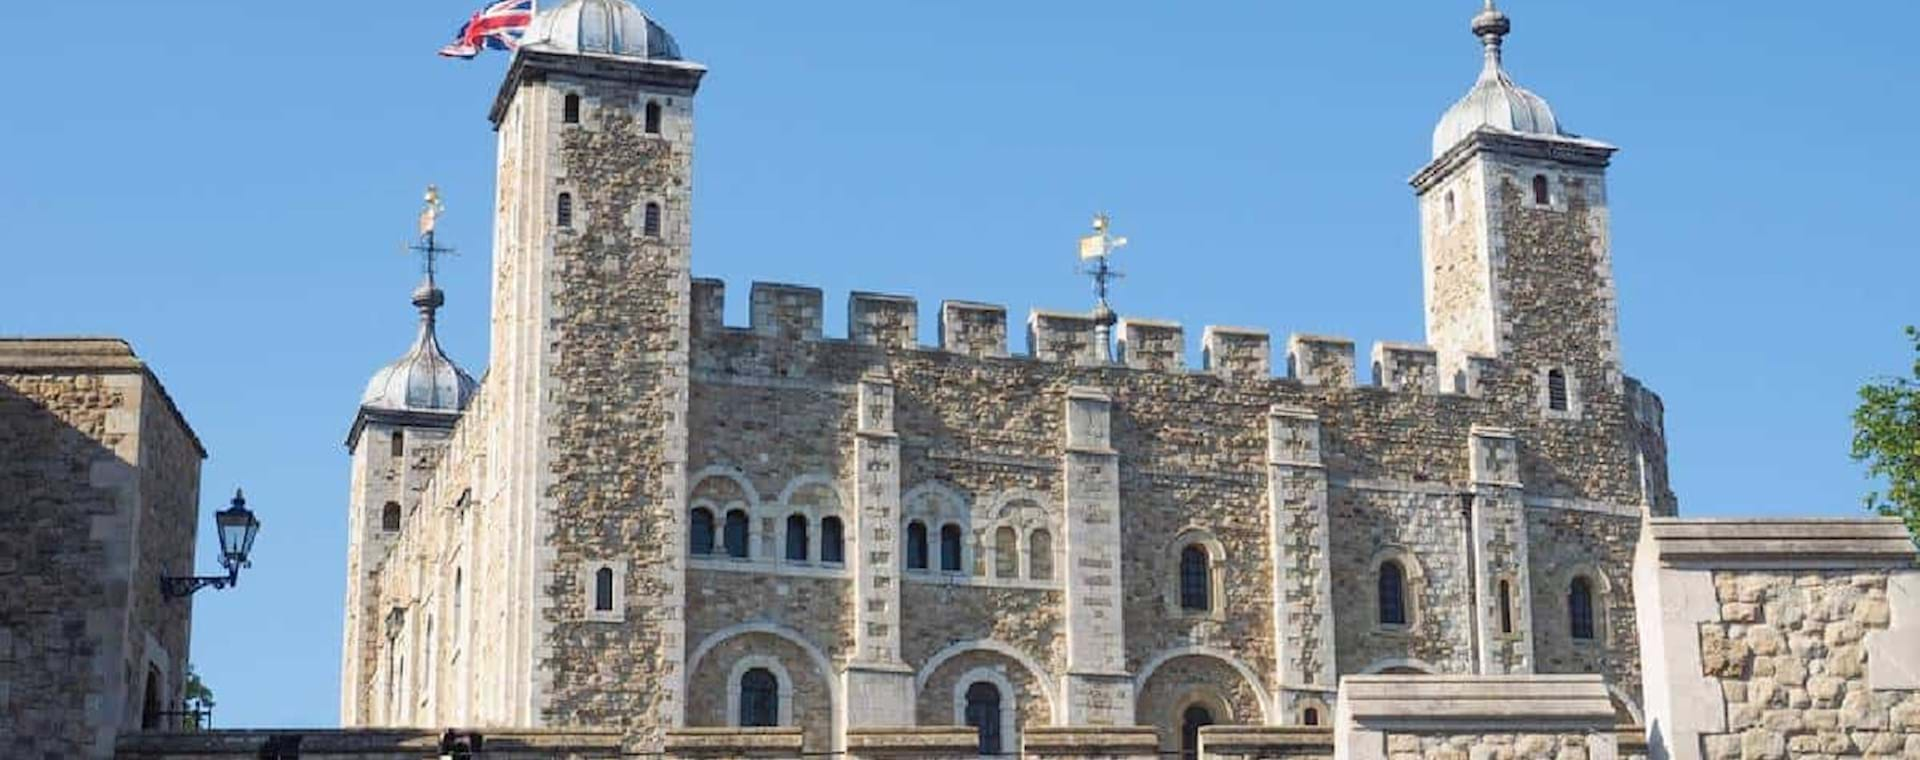 Tower of London's walls